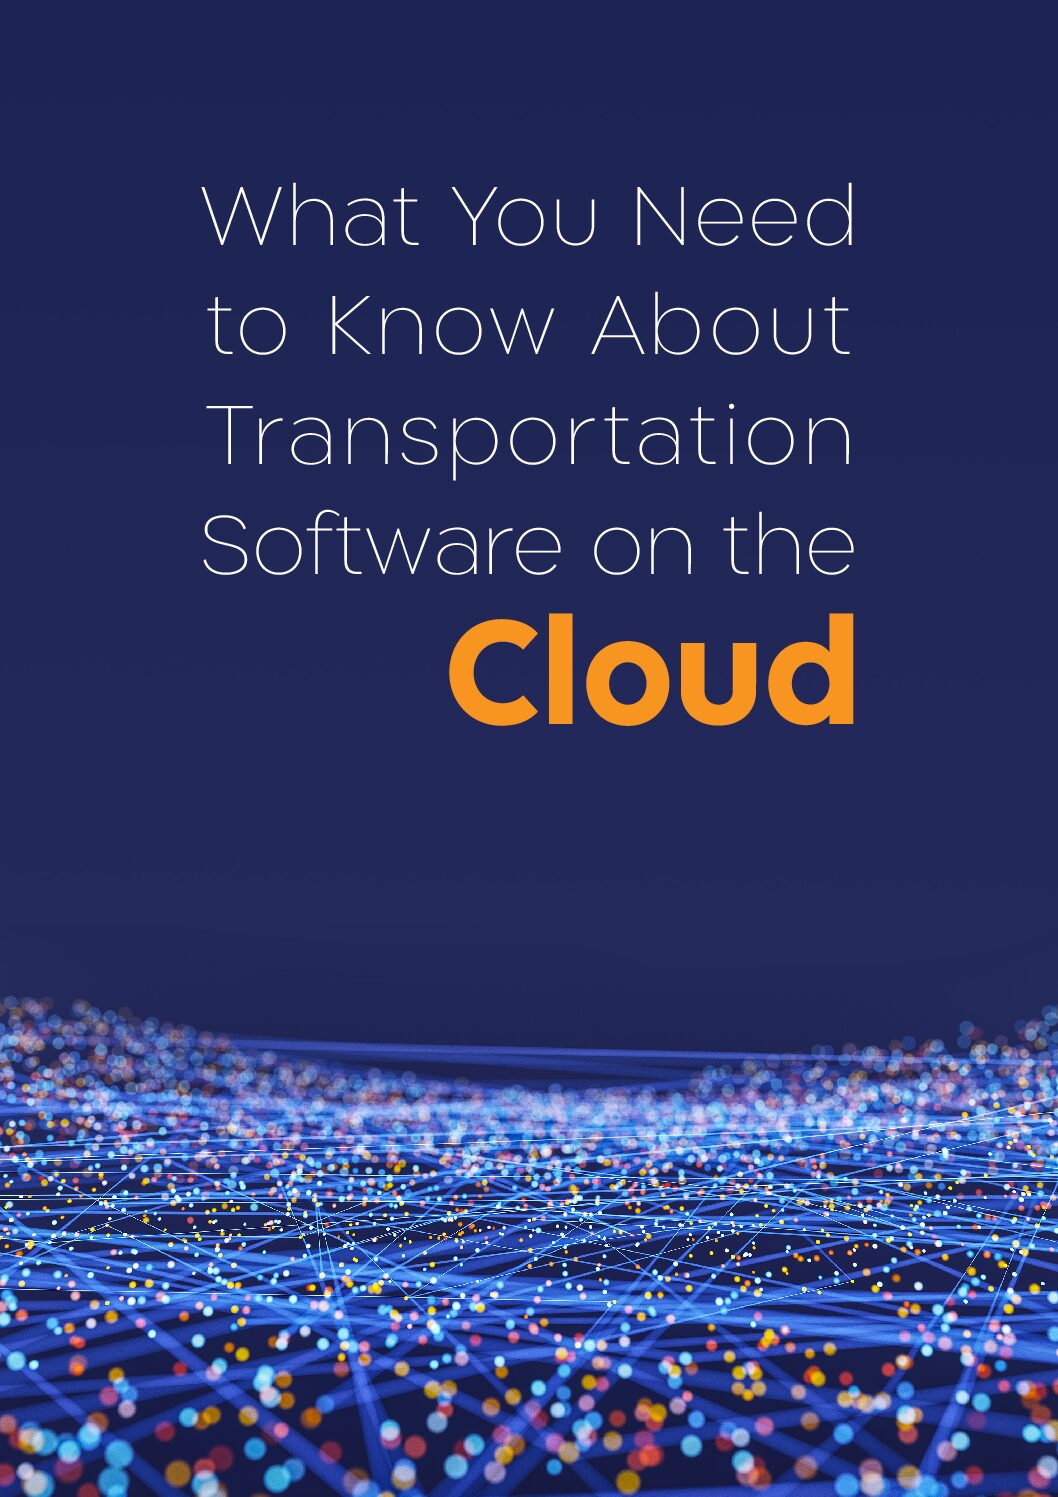 What You Need to Know about Transportation Software on the Cloud